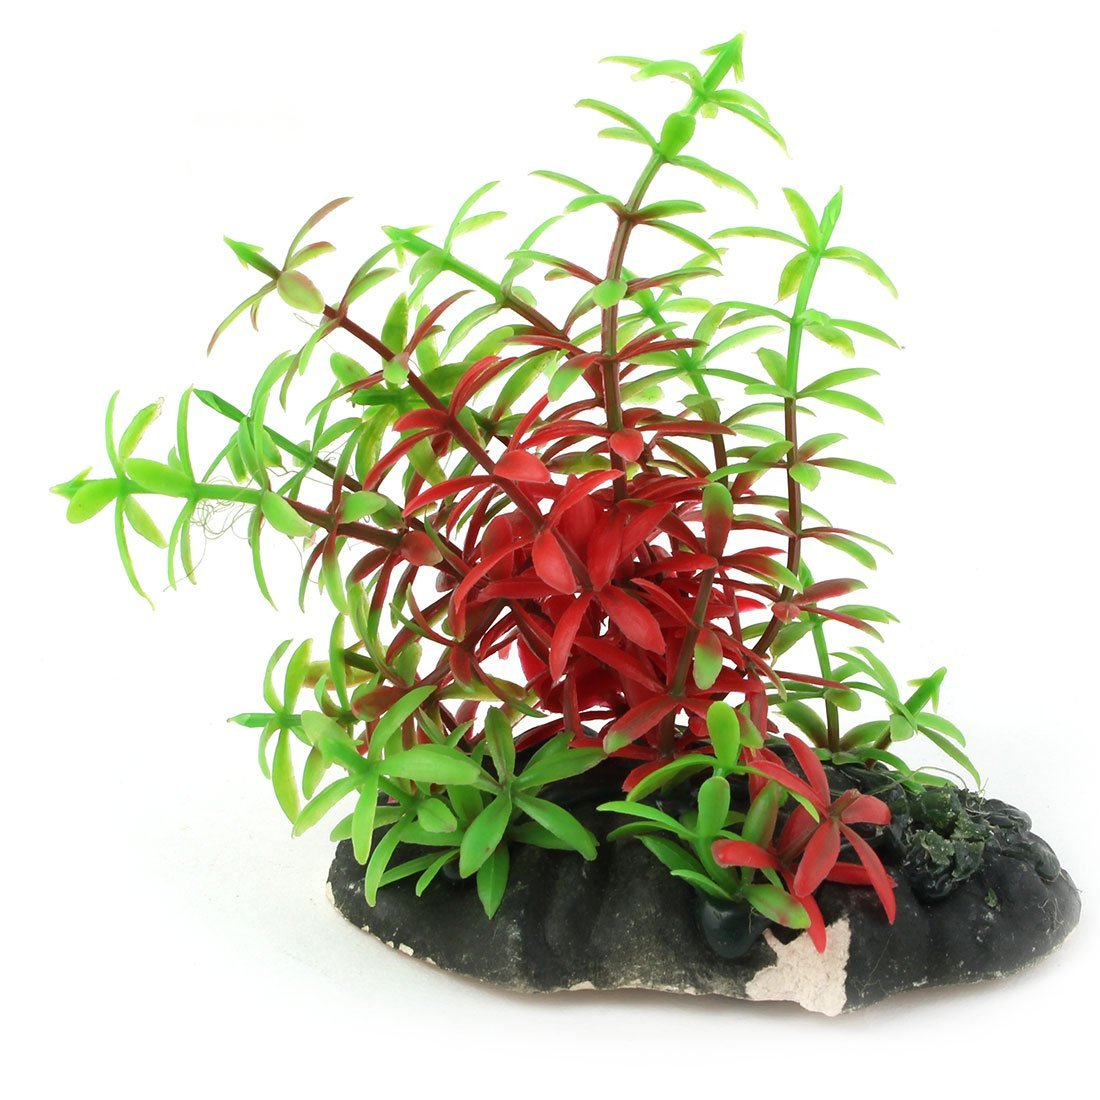 Amazon.com: eDealMax plástico del acuario Artificial Artificial emulational Hierba Planta de Acuario Decoración 2pcs Rojo Verde: Pet Supplies